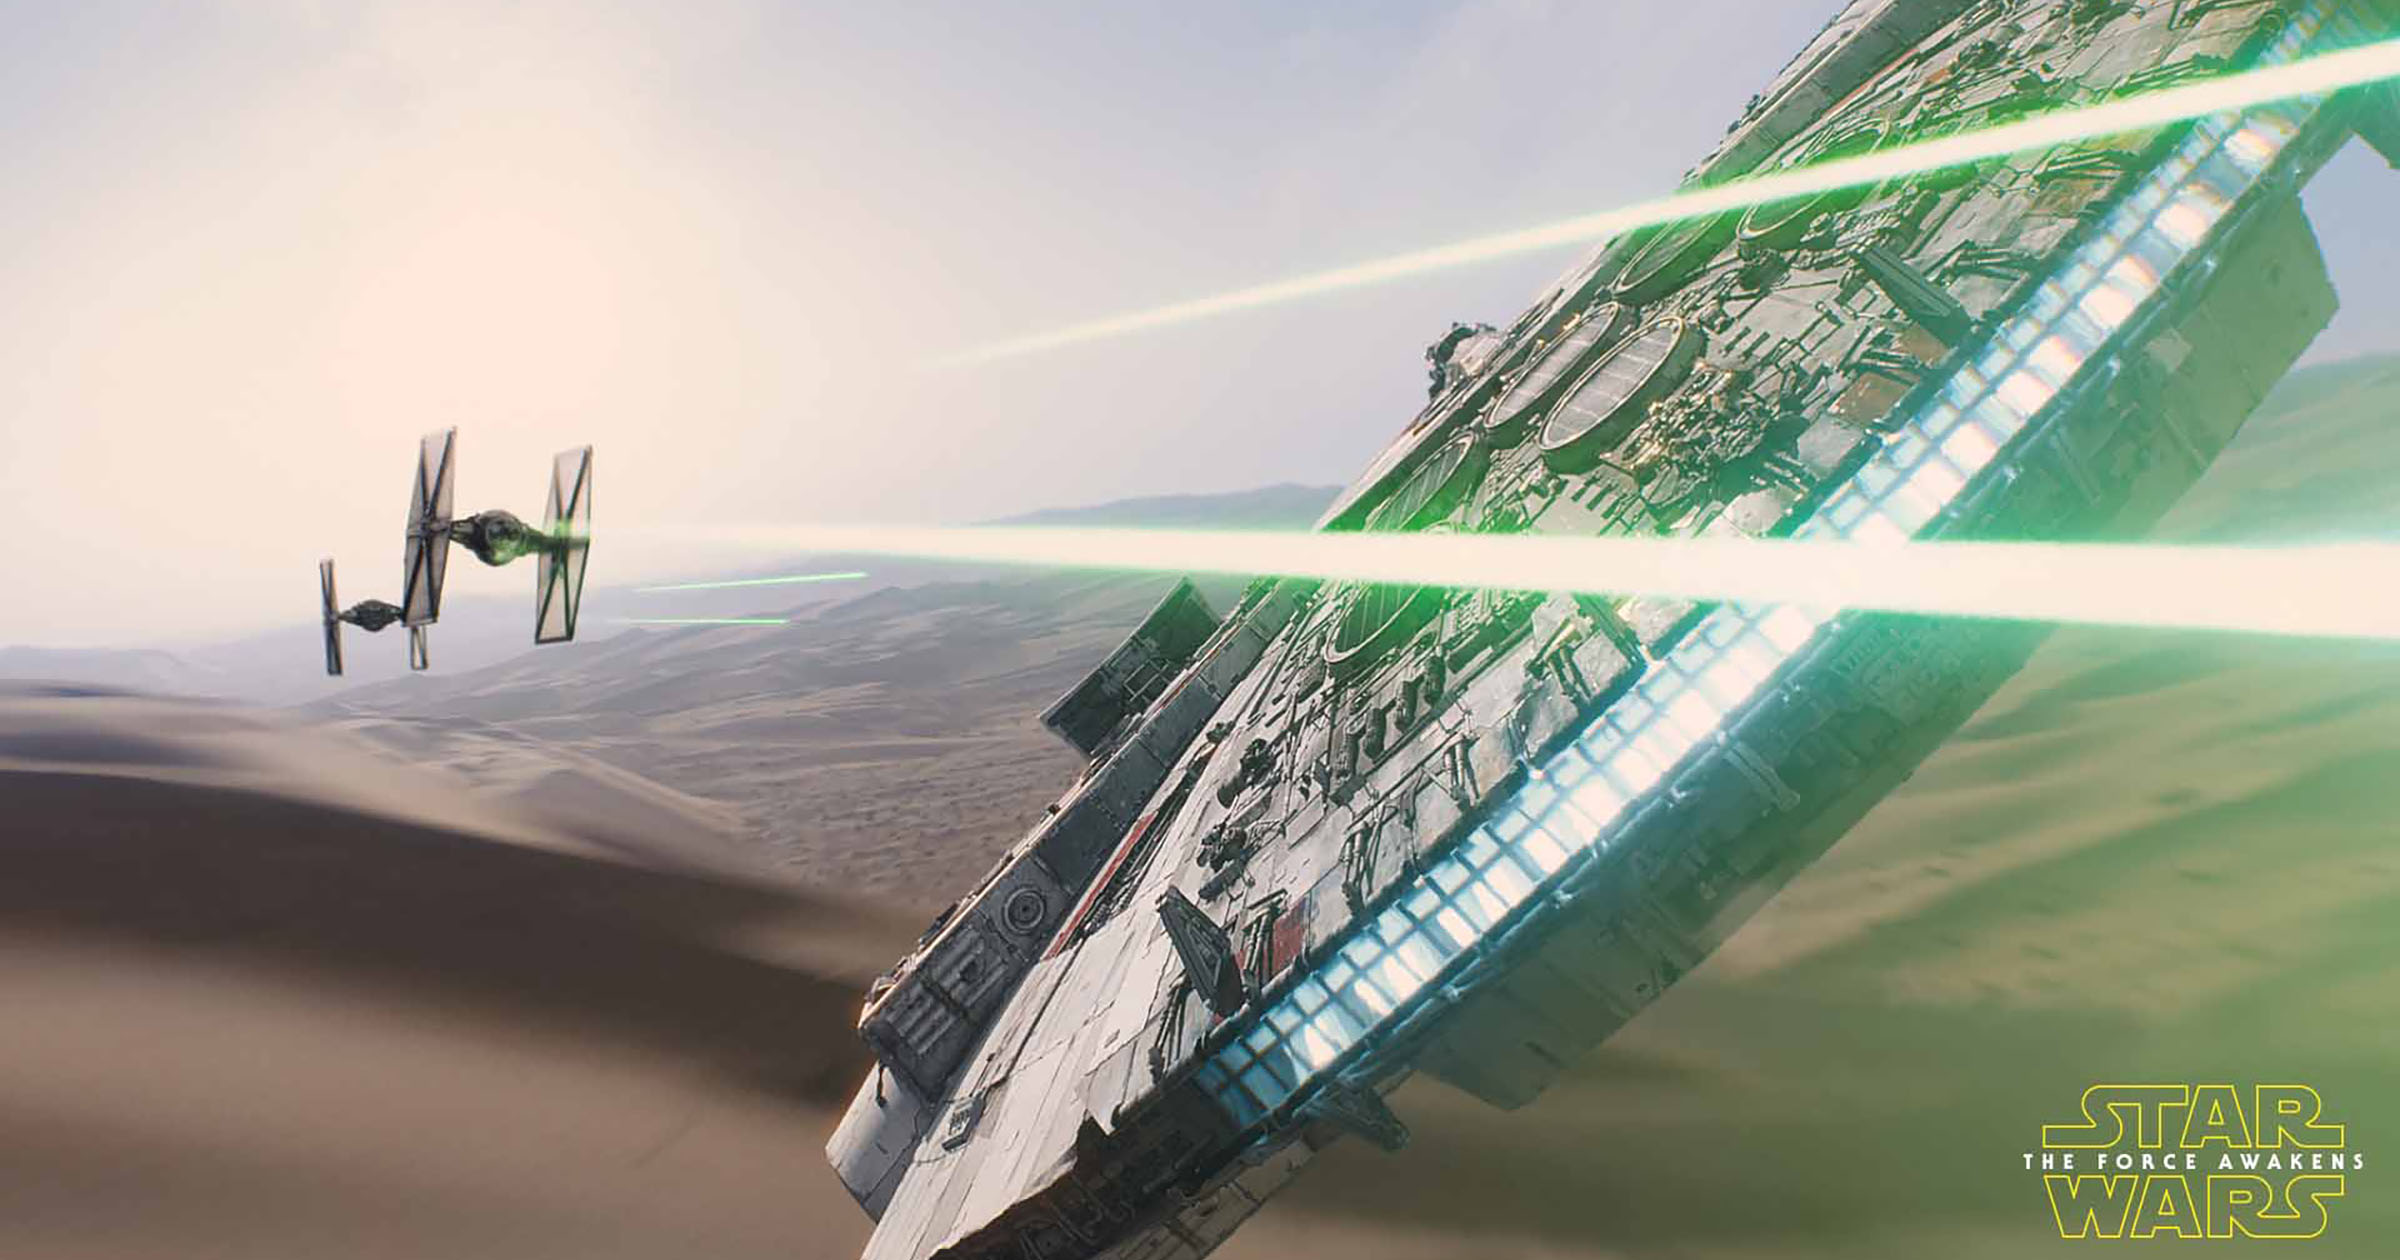 Star Wars The Force Awakens - Will Files Interview